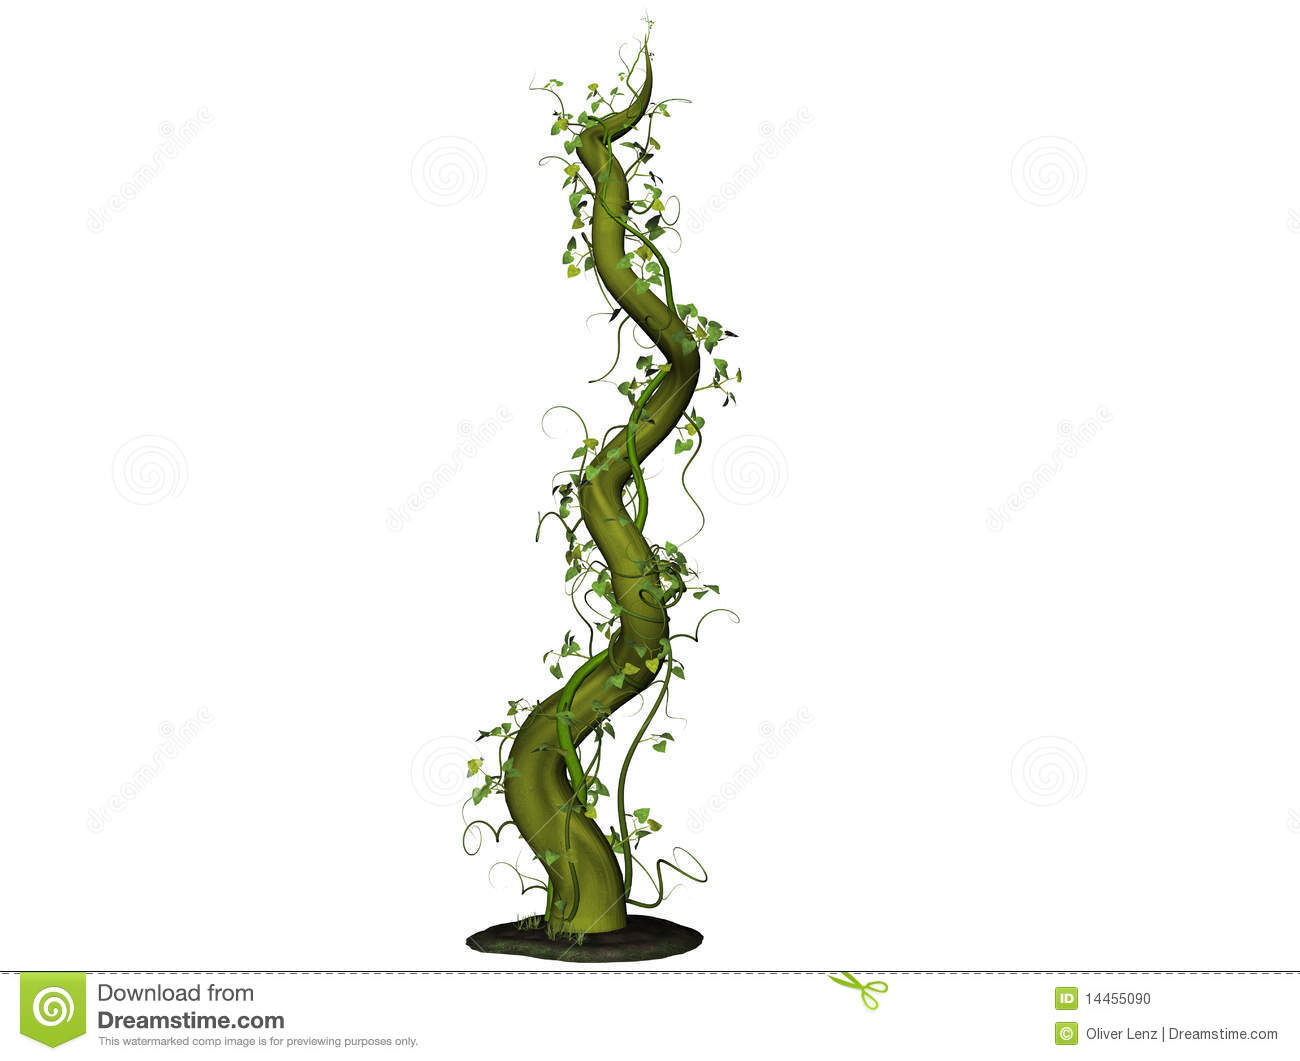 Illustration of beanstalk emerging from the ground.